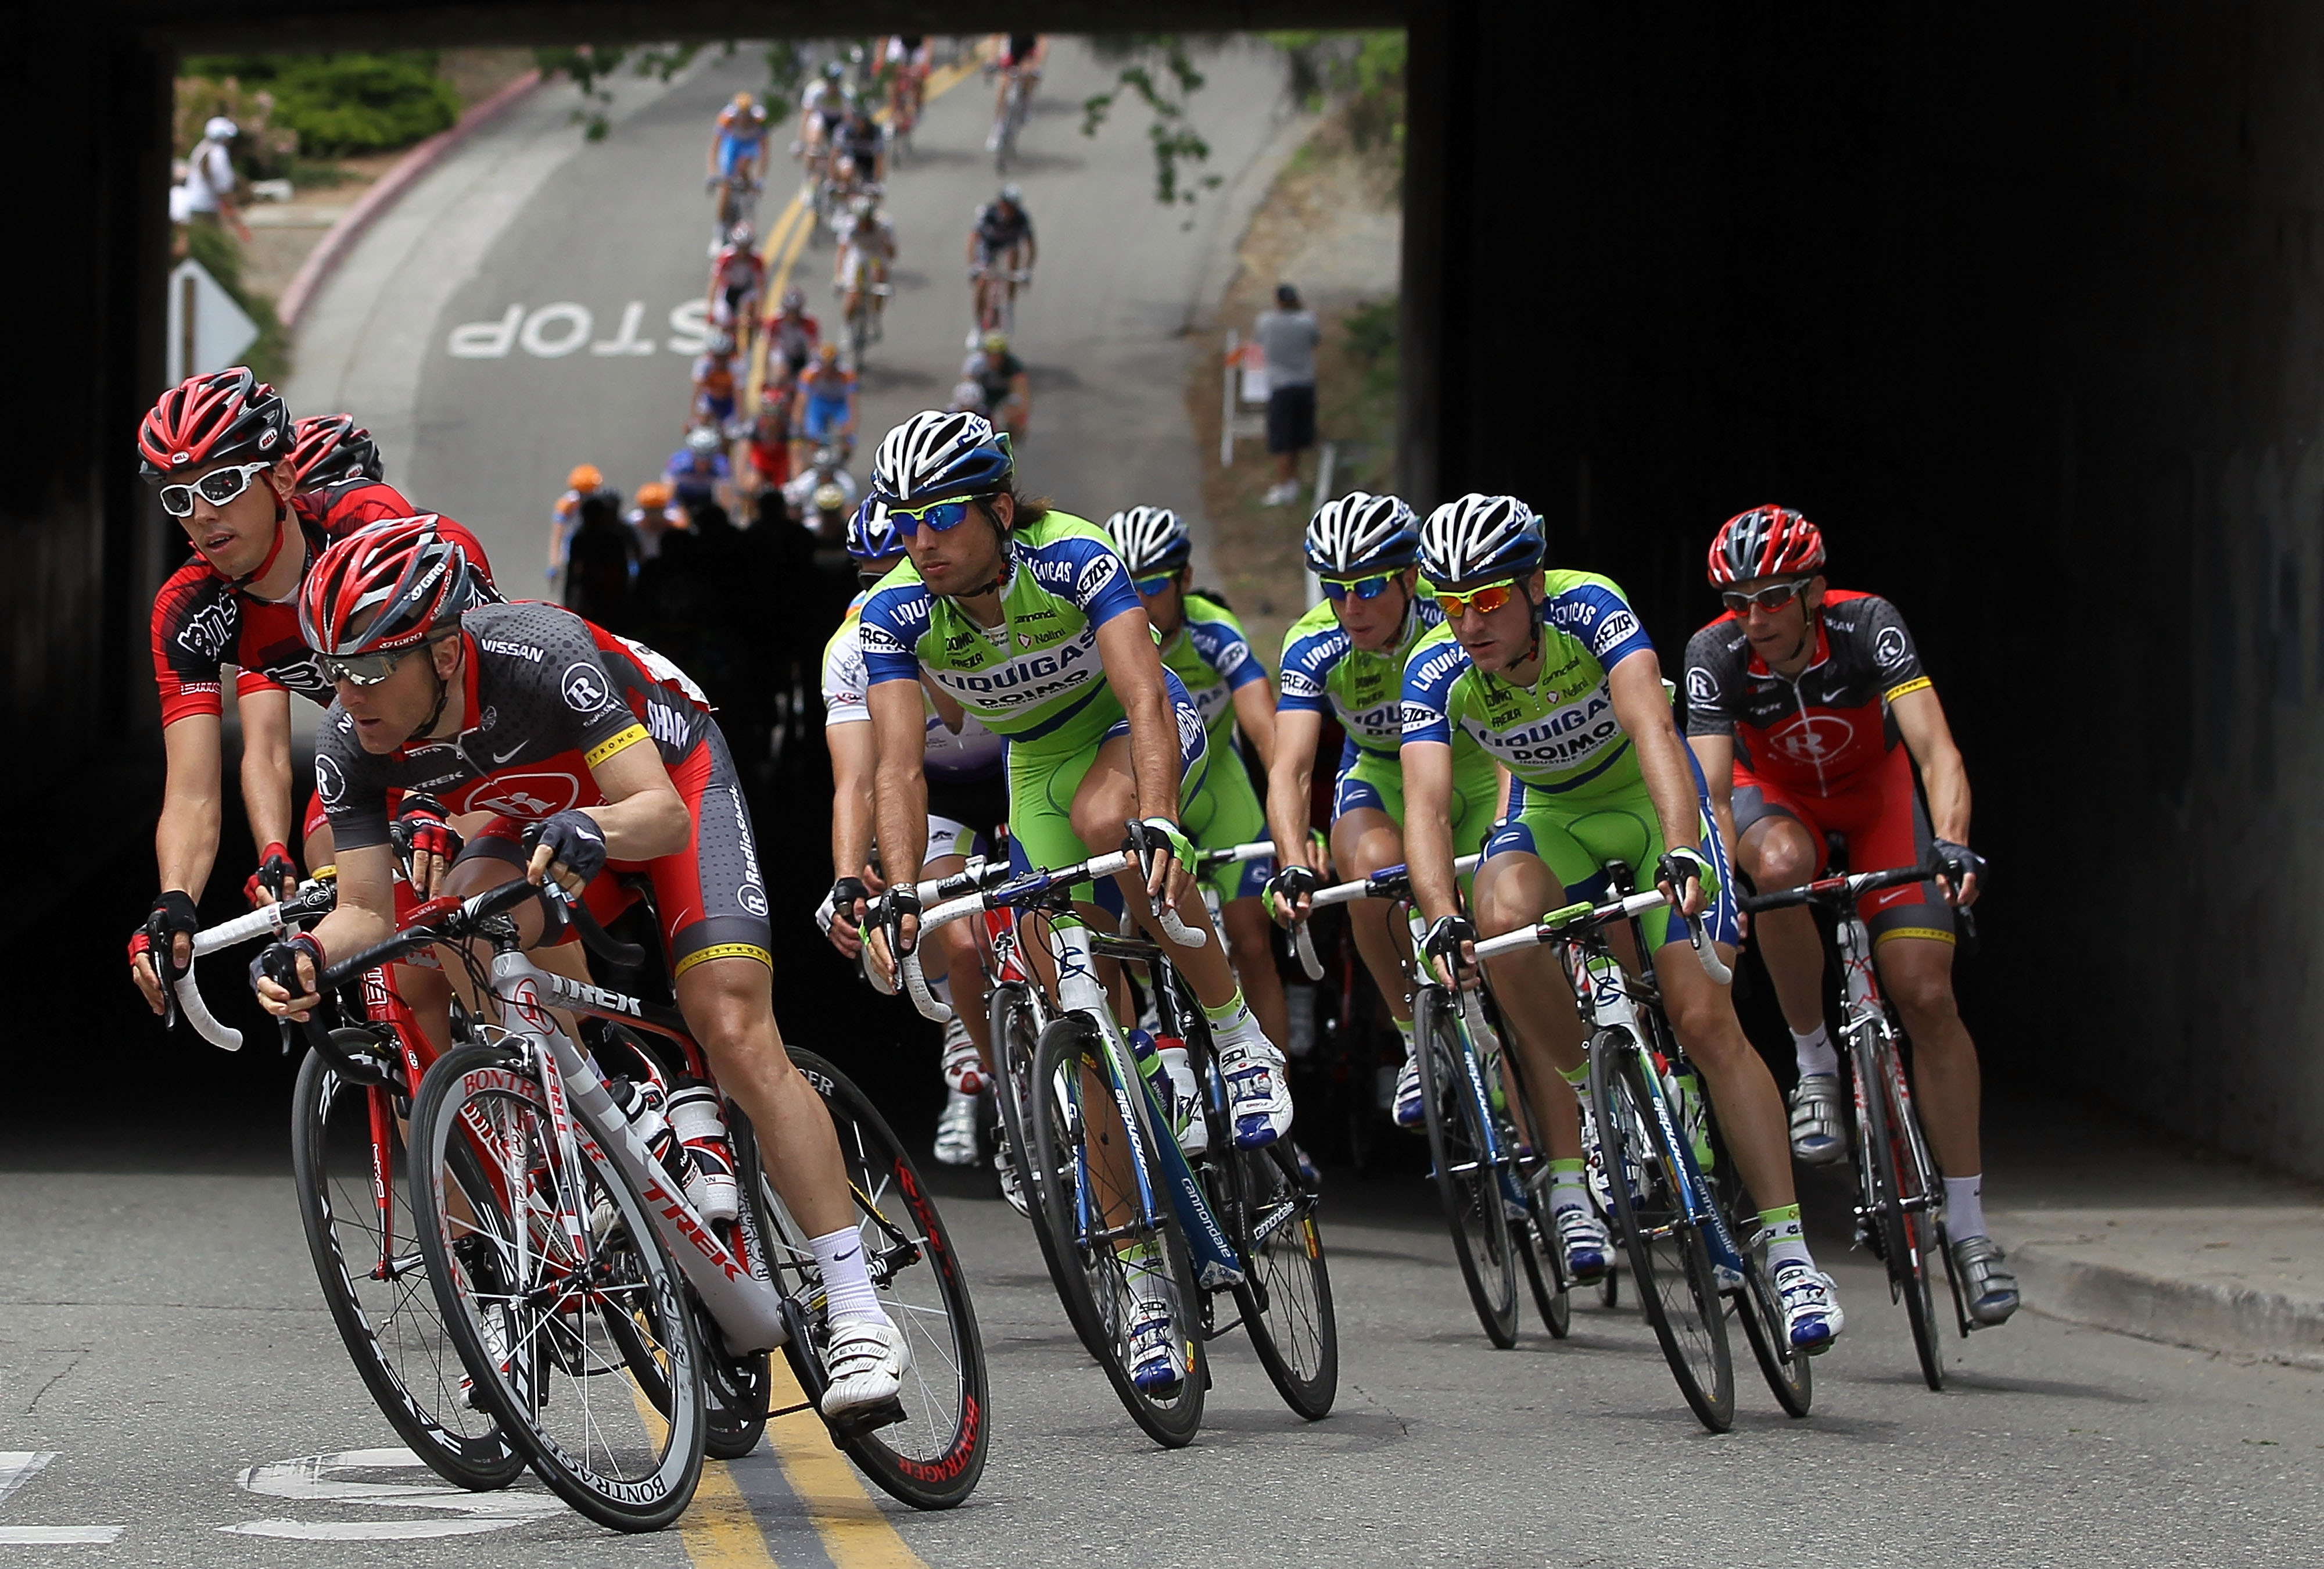 Photo by Doug Pensinger/Amgen Tour of California